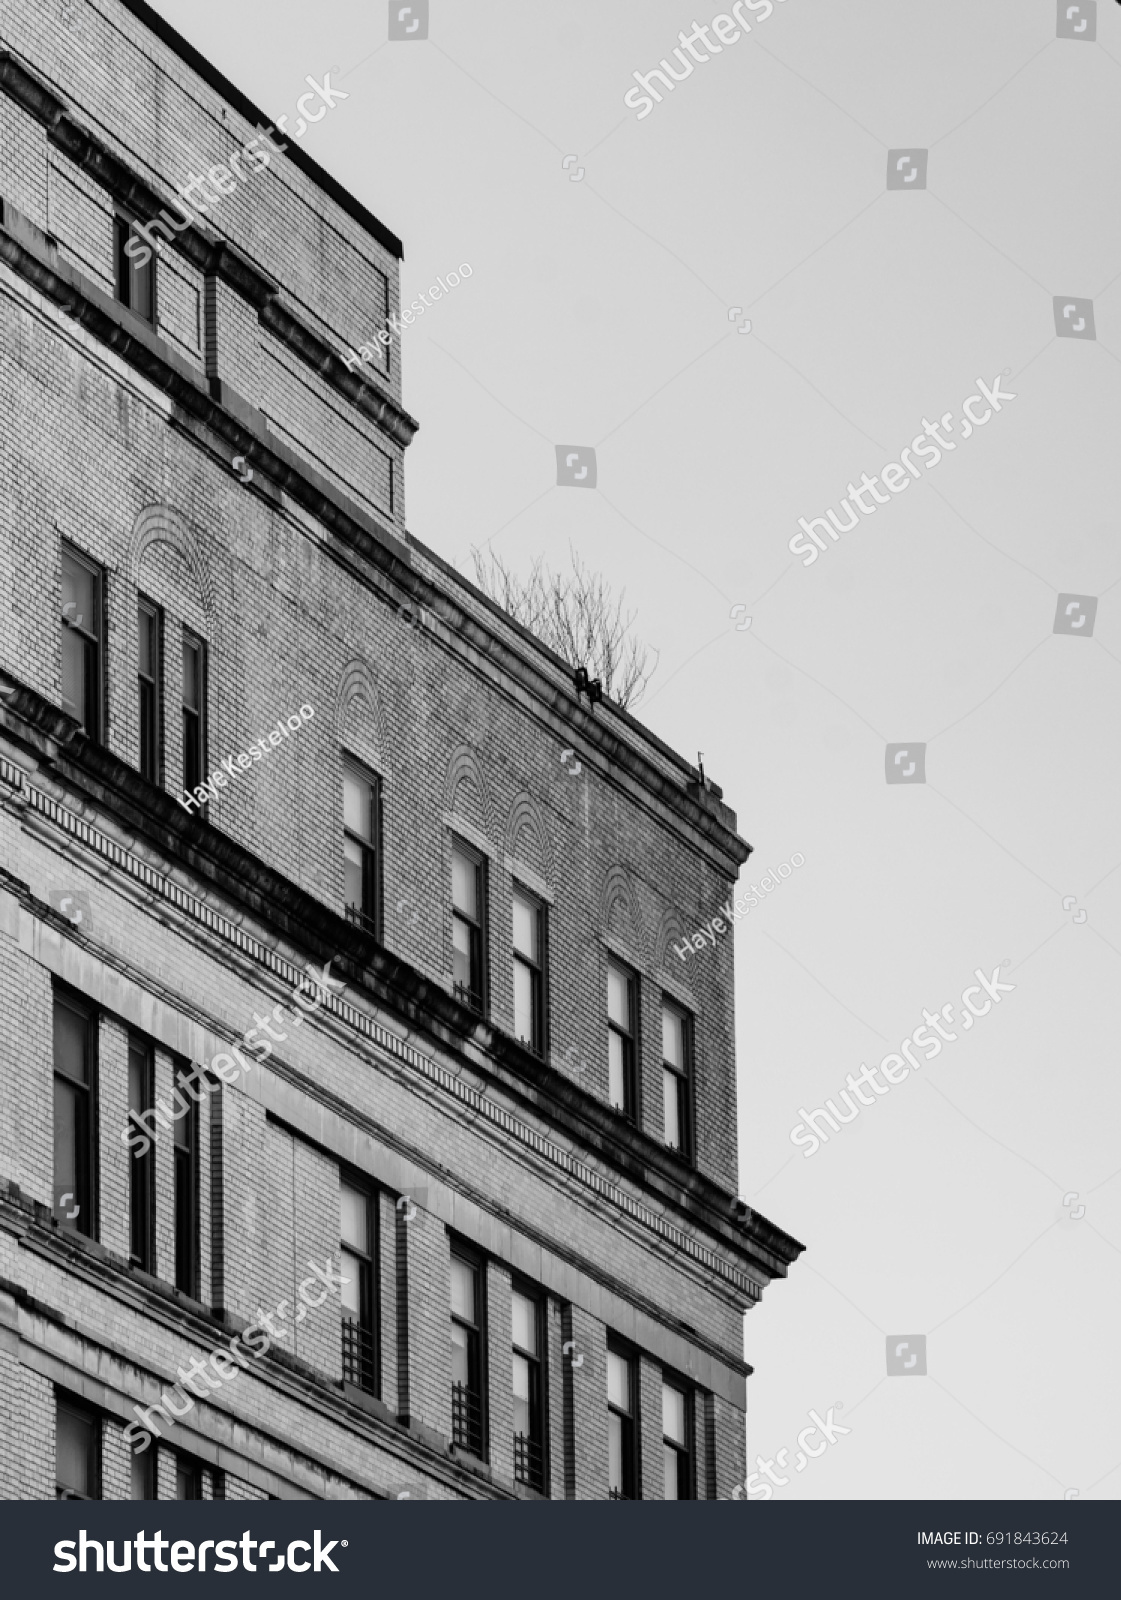 Design details of modern and classic architecture in manhattan